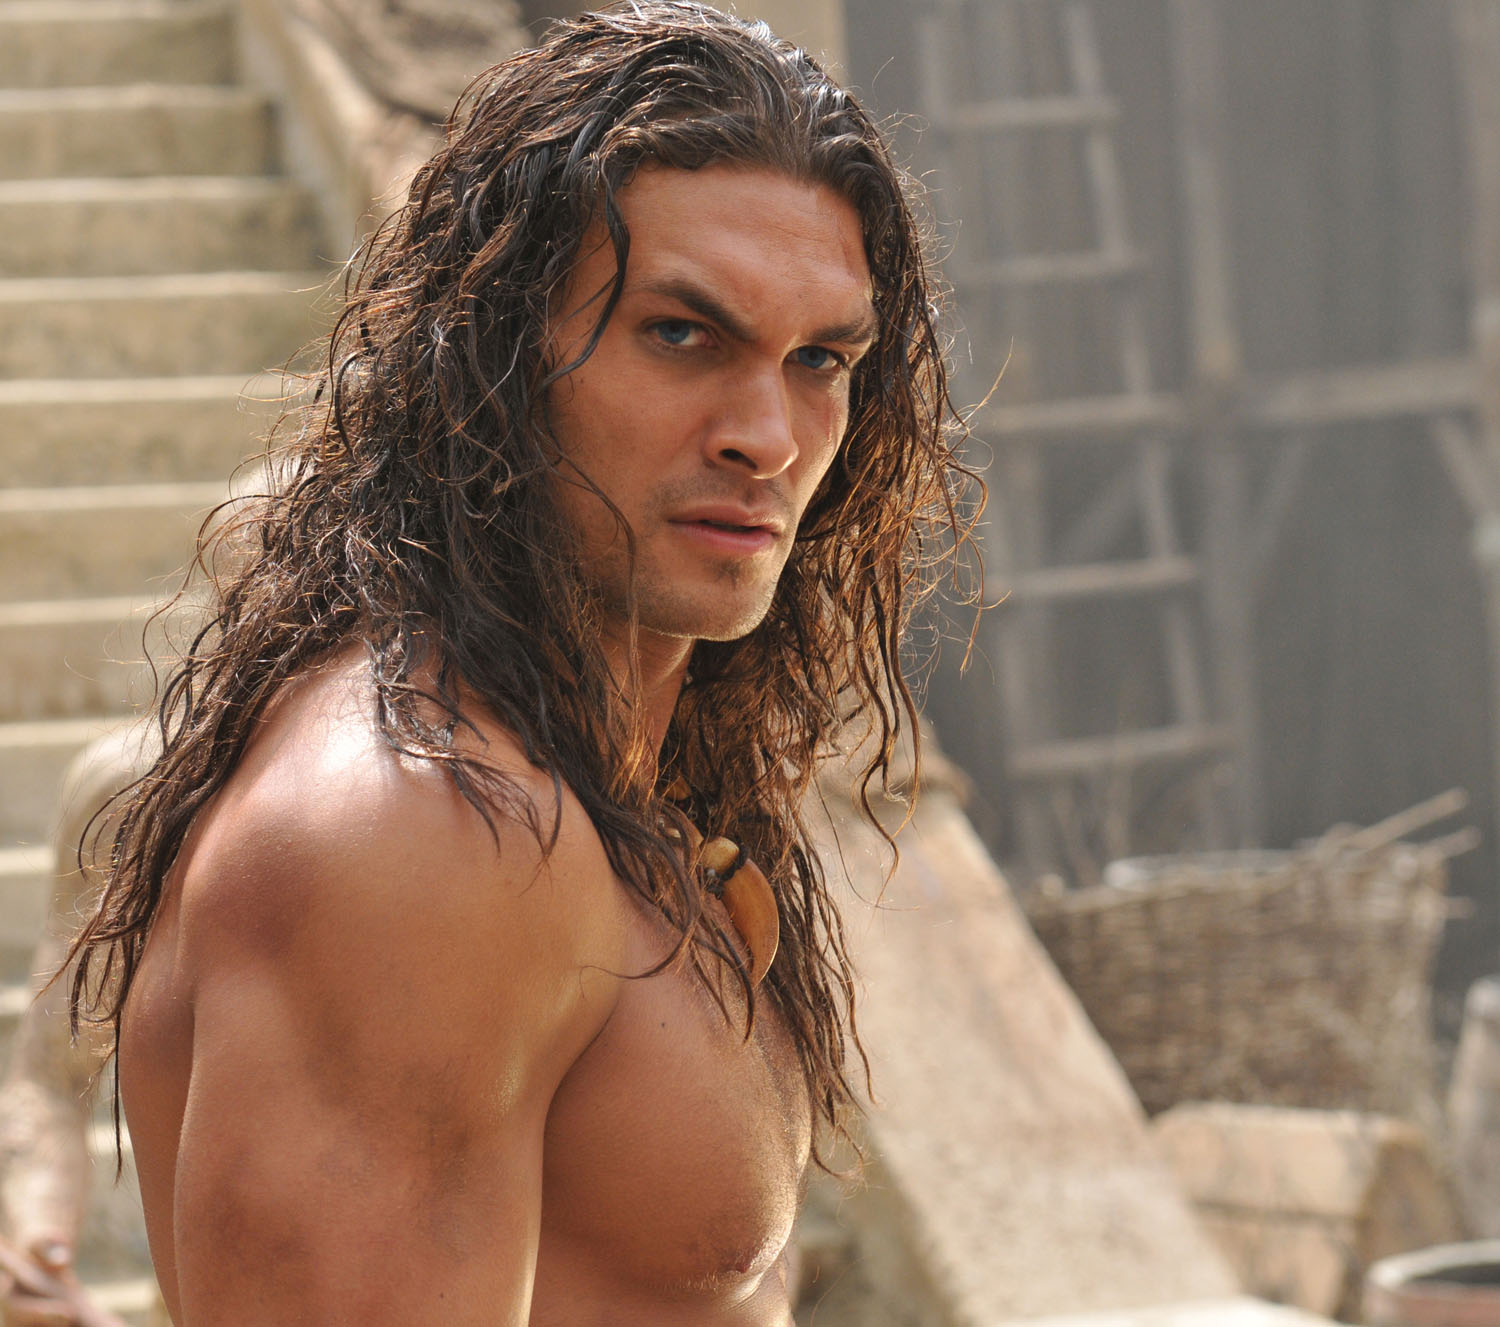 Jason Momoa 2011: Tower Of The Archmage: Conan The Barbarian